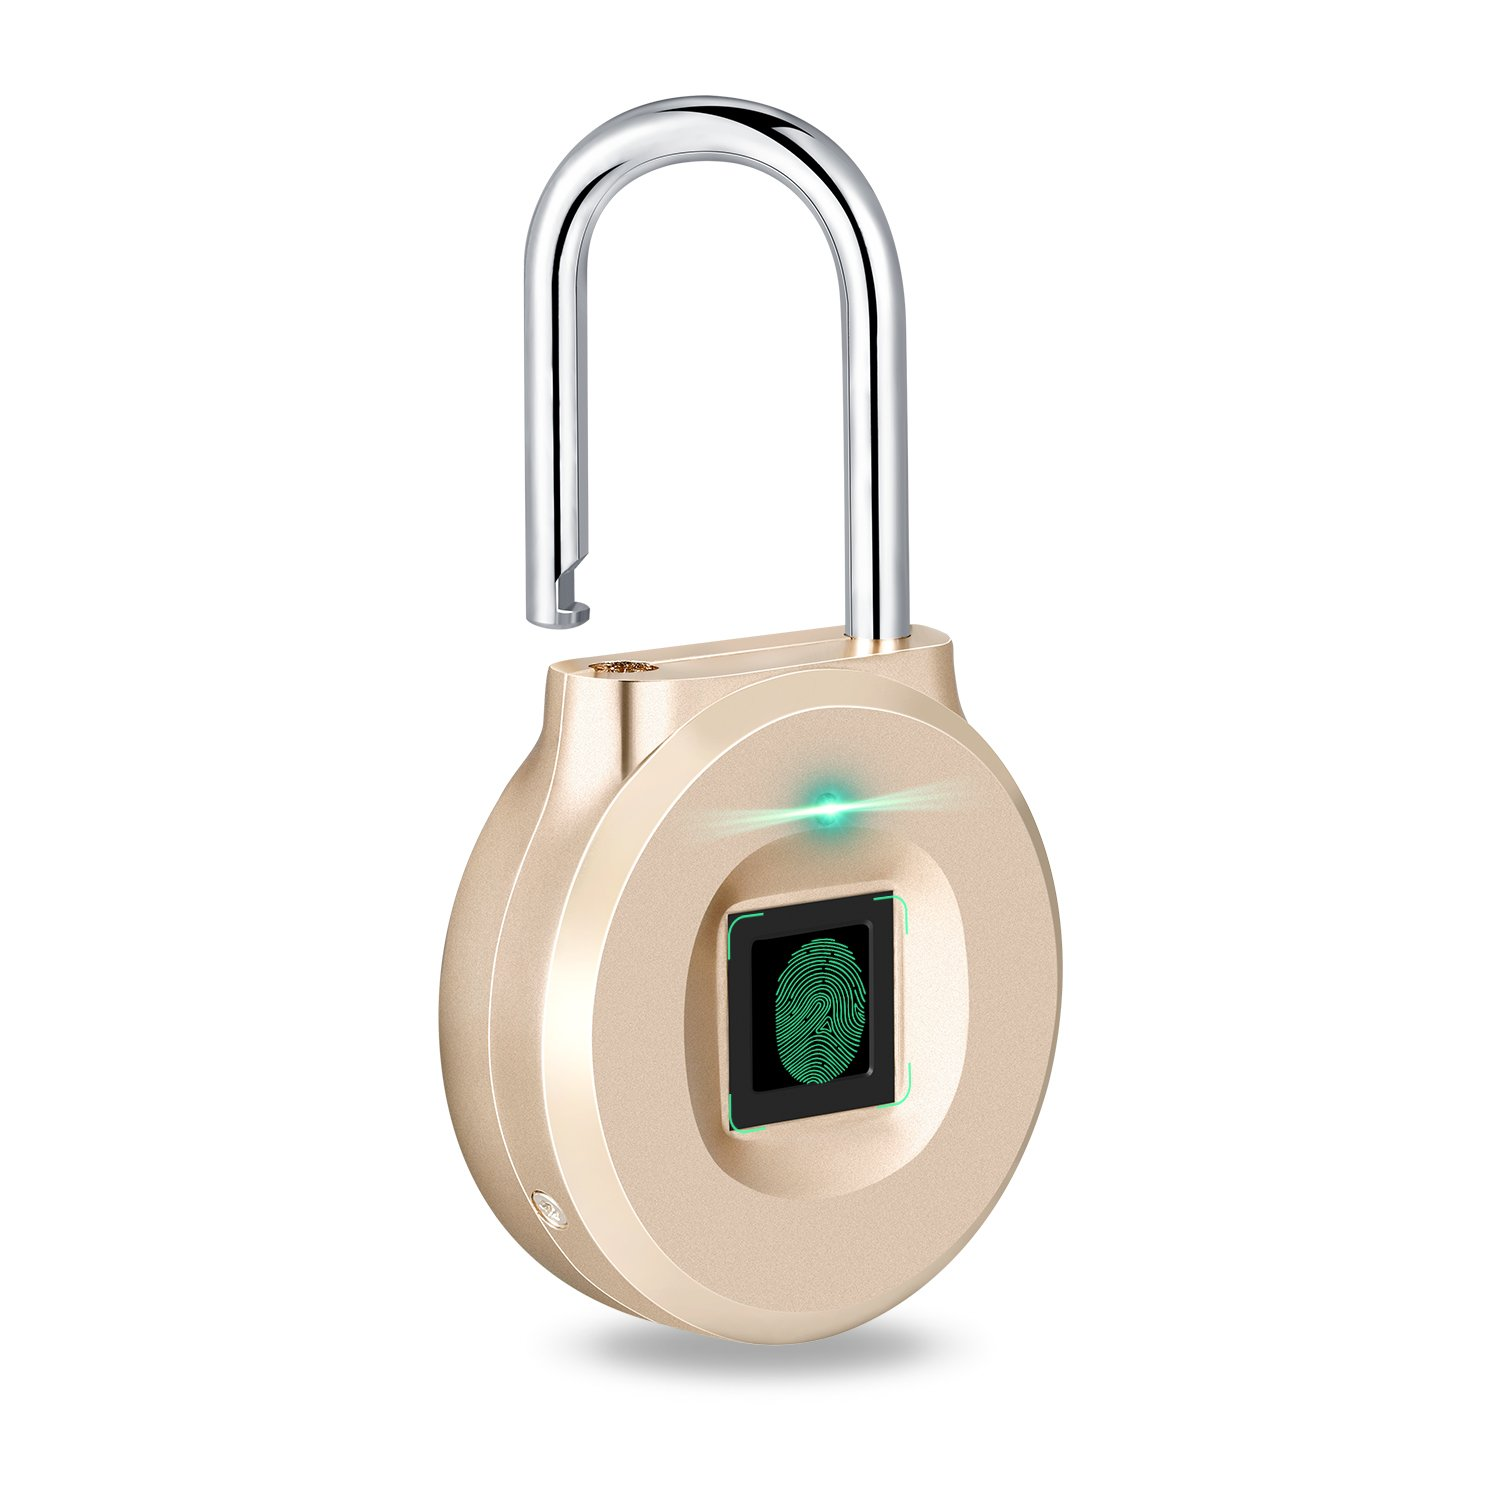 Uervoton Fingerprint Padlock, Smart Lock Ideal for Duffel Bag, Shopping Carts, Suitcase, Gym Locker, Cabinet, Cupboard, Drawer and more Indoor Applications (Small)